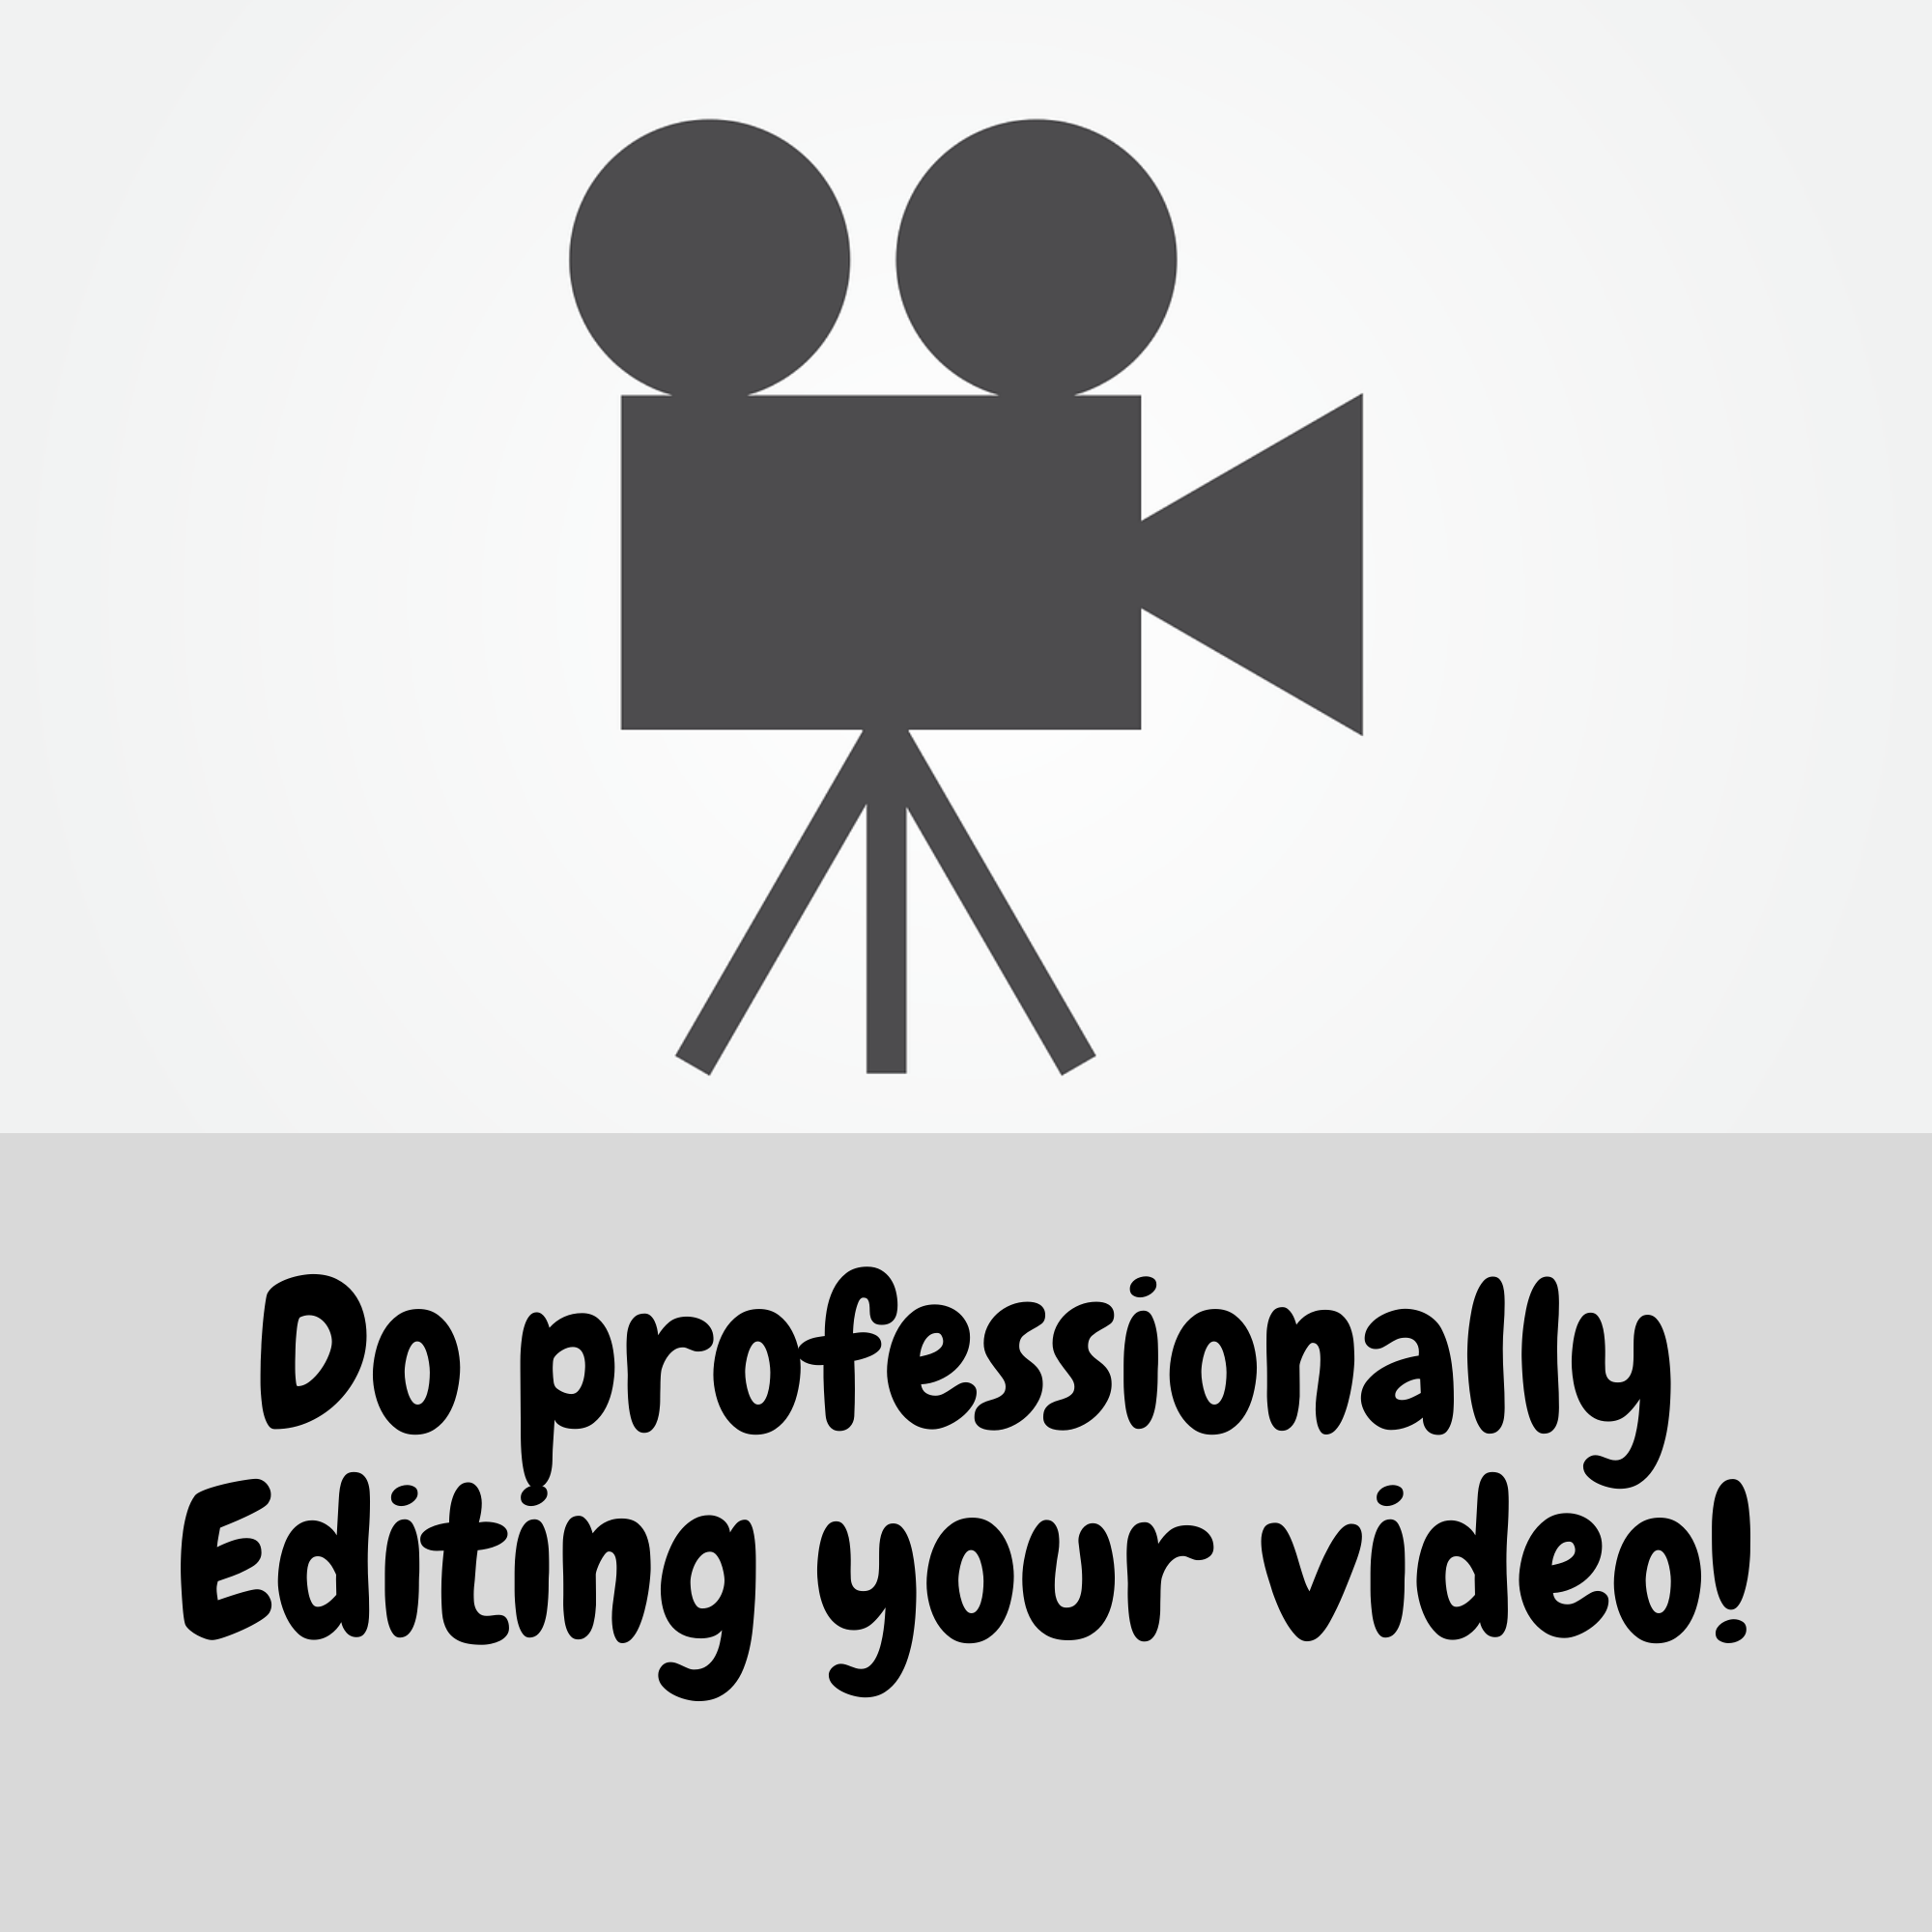 Do professionally Editing your video